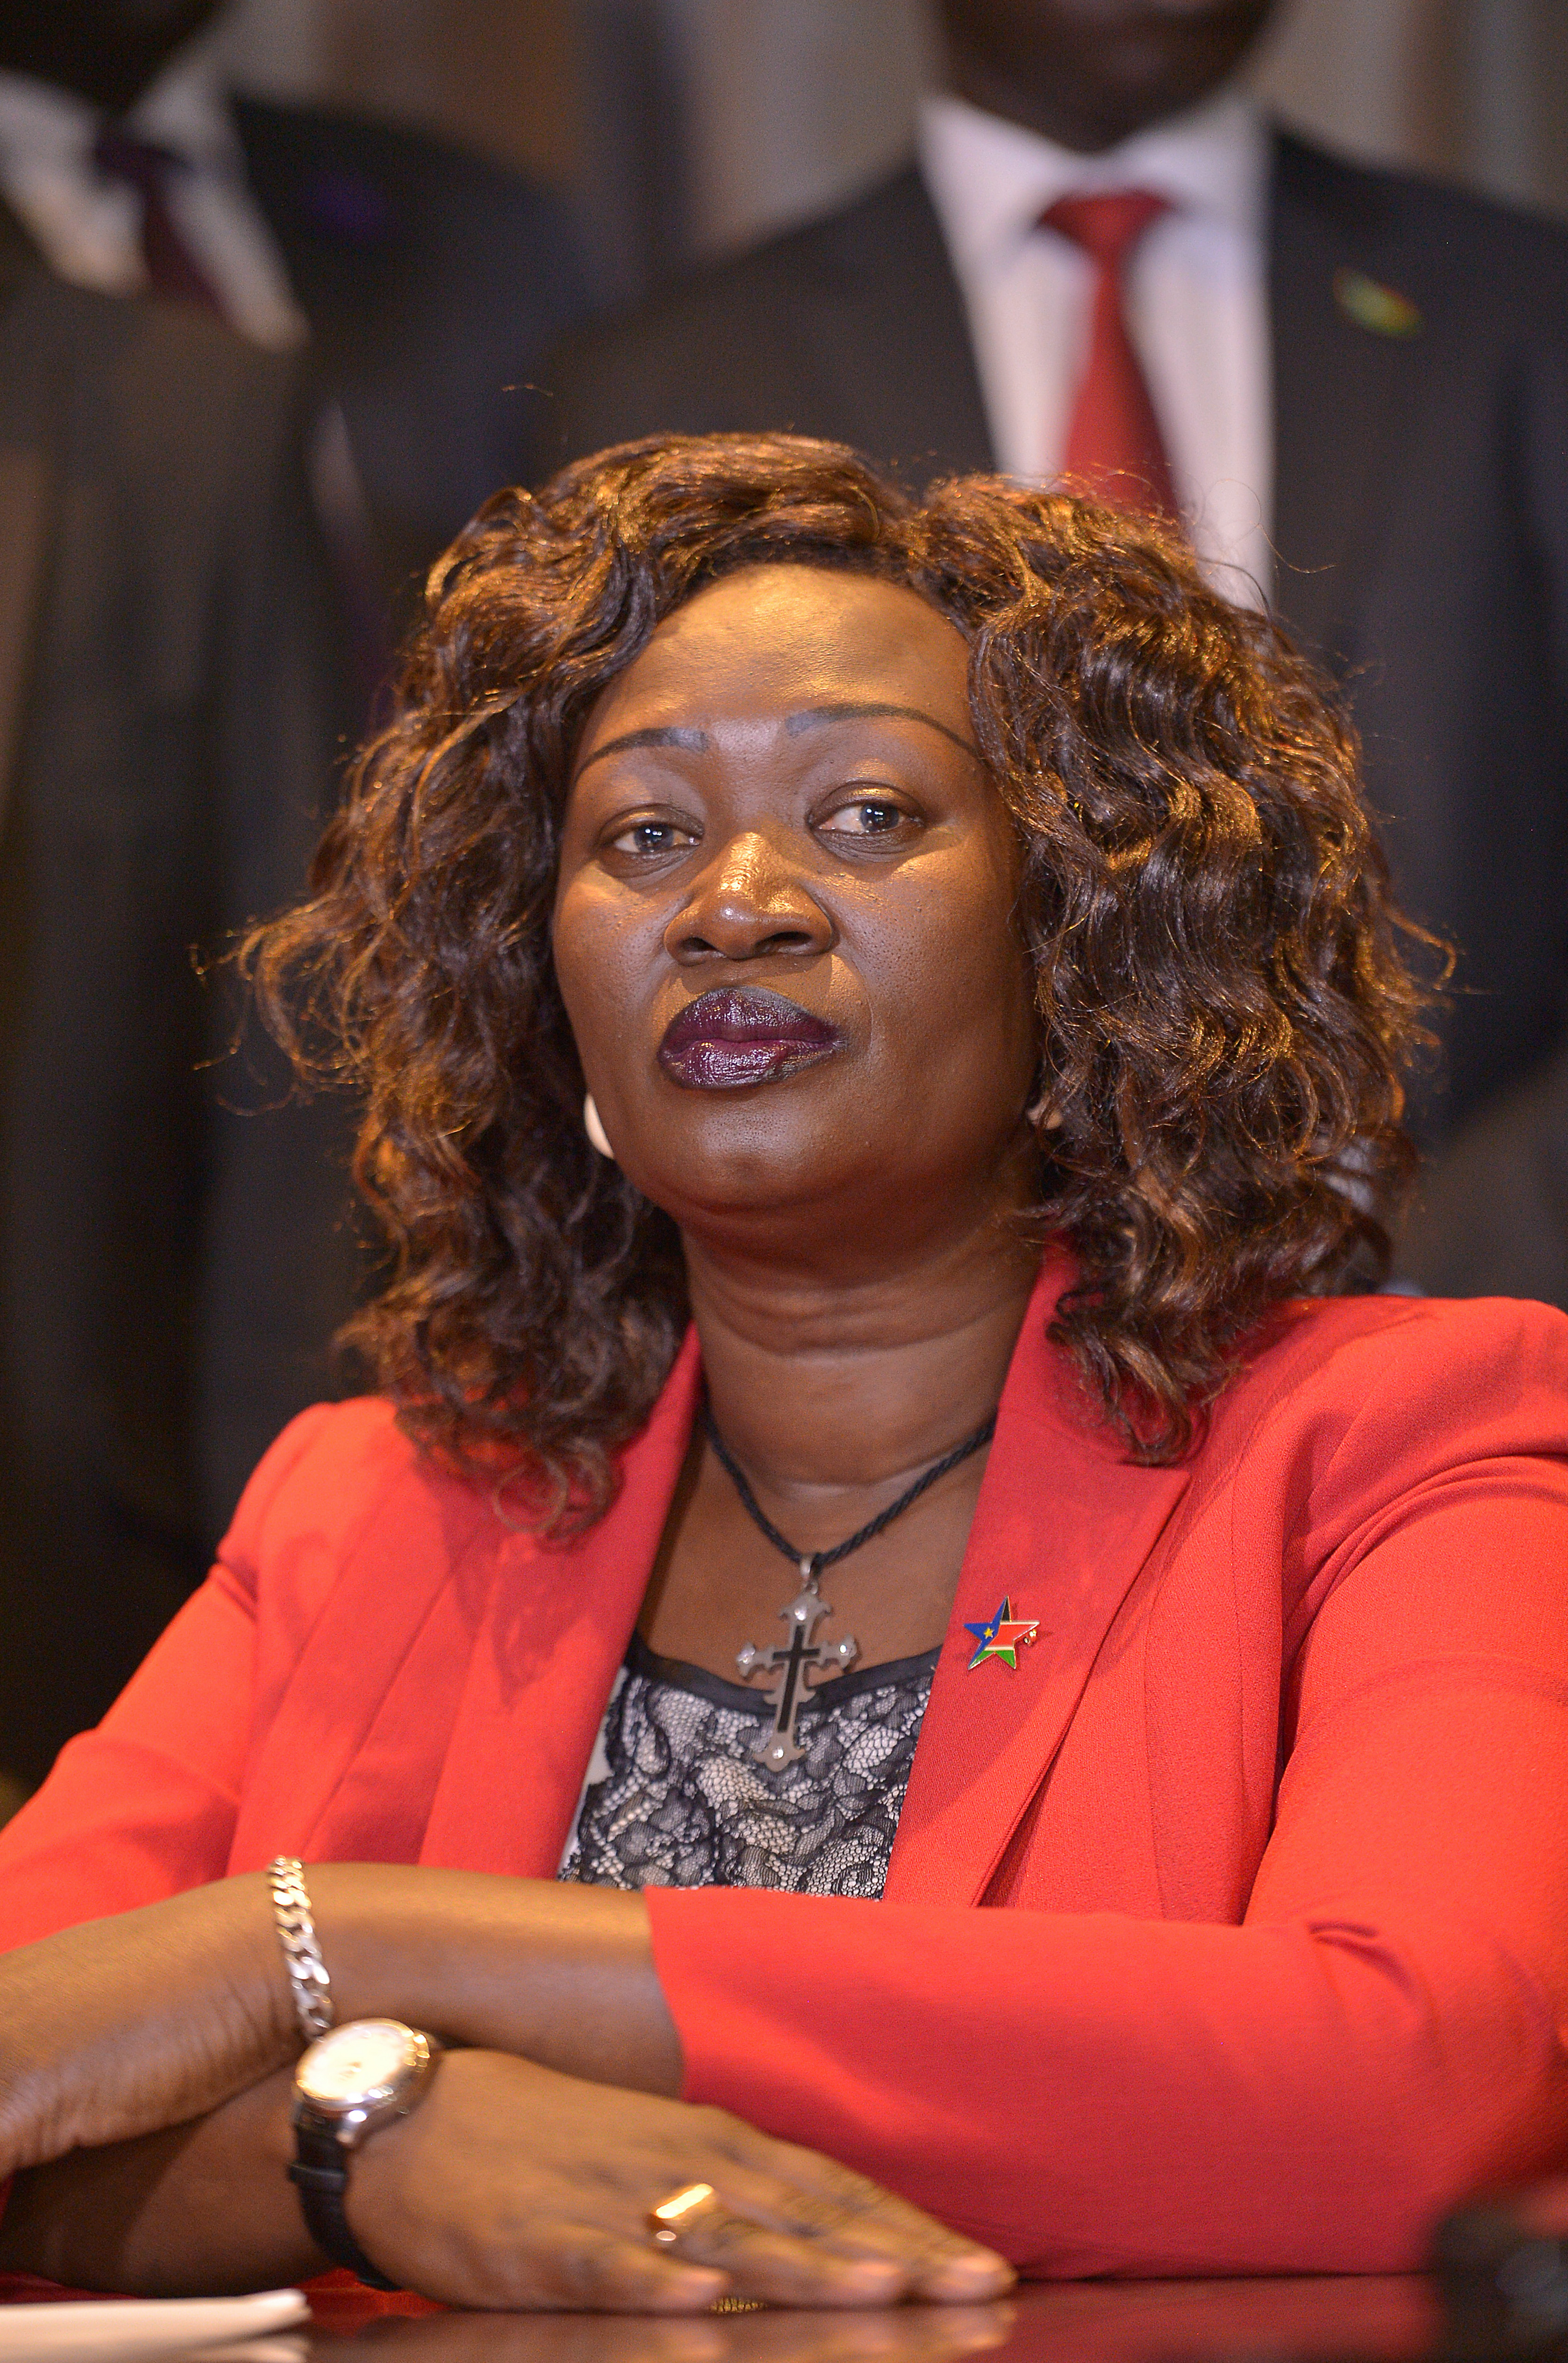 South Sudan Minister for Gender and Social Development Awut Deng Acuil  takes part in a press conference on Aug. 17, 2016 in the Kenyan capital of Nairobi.